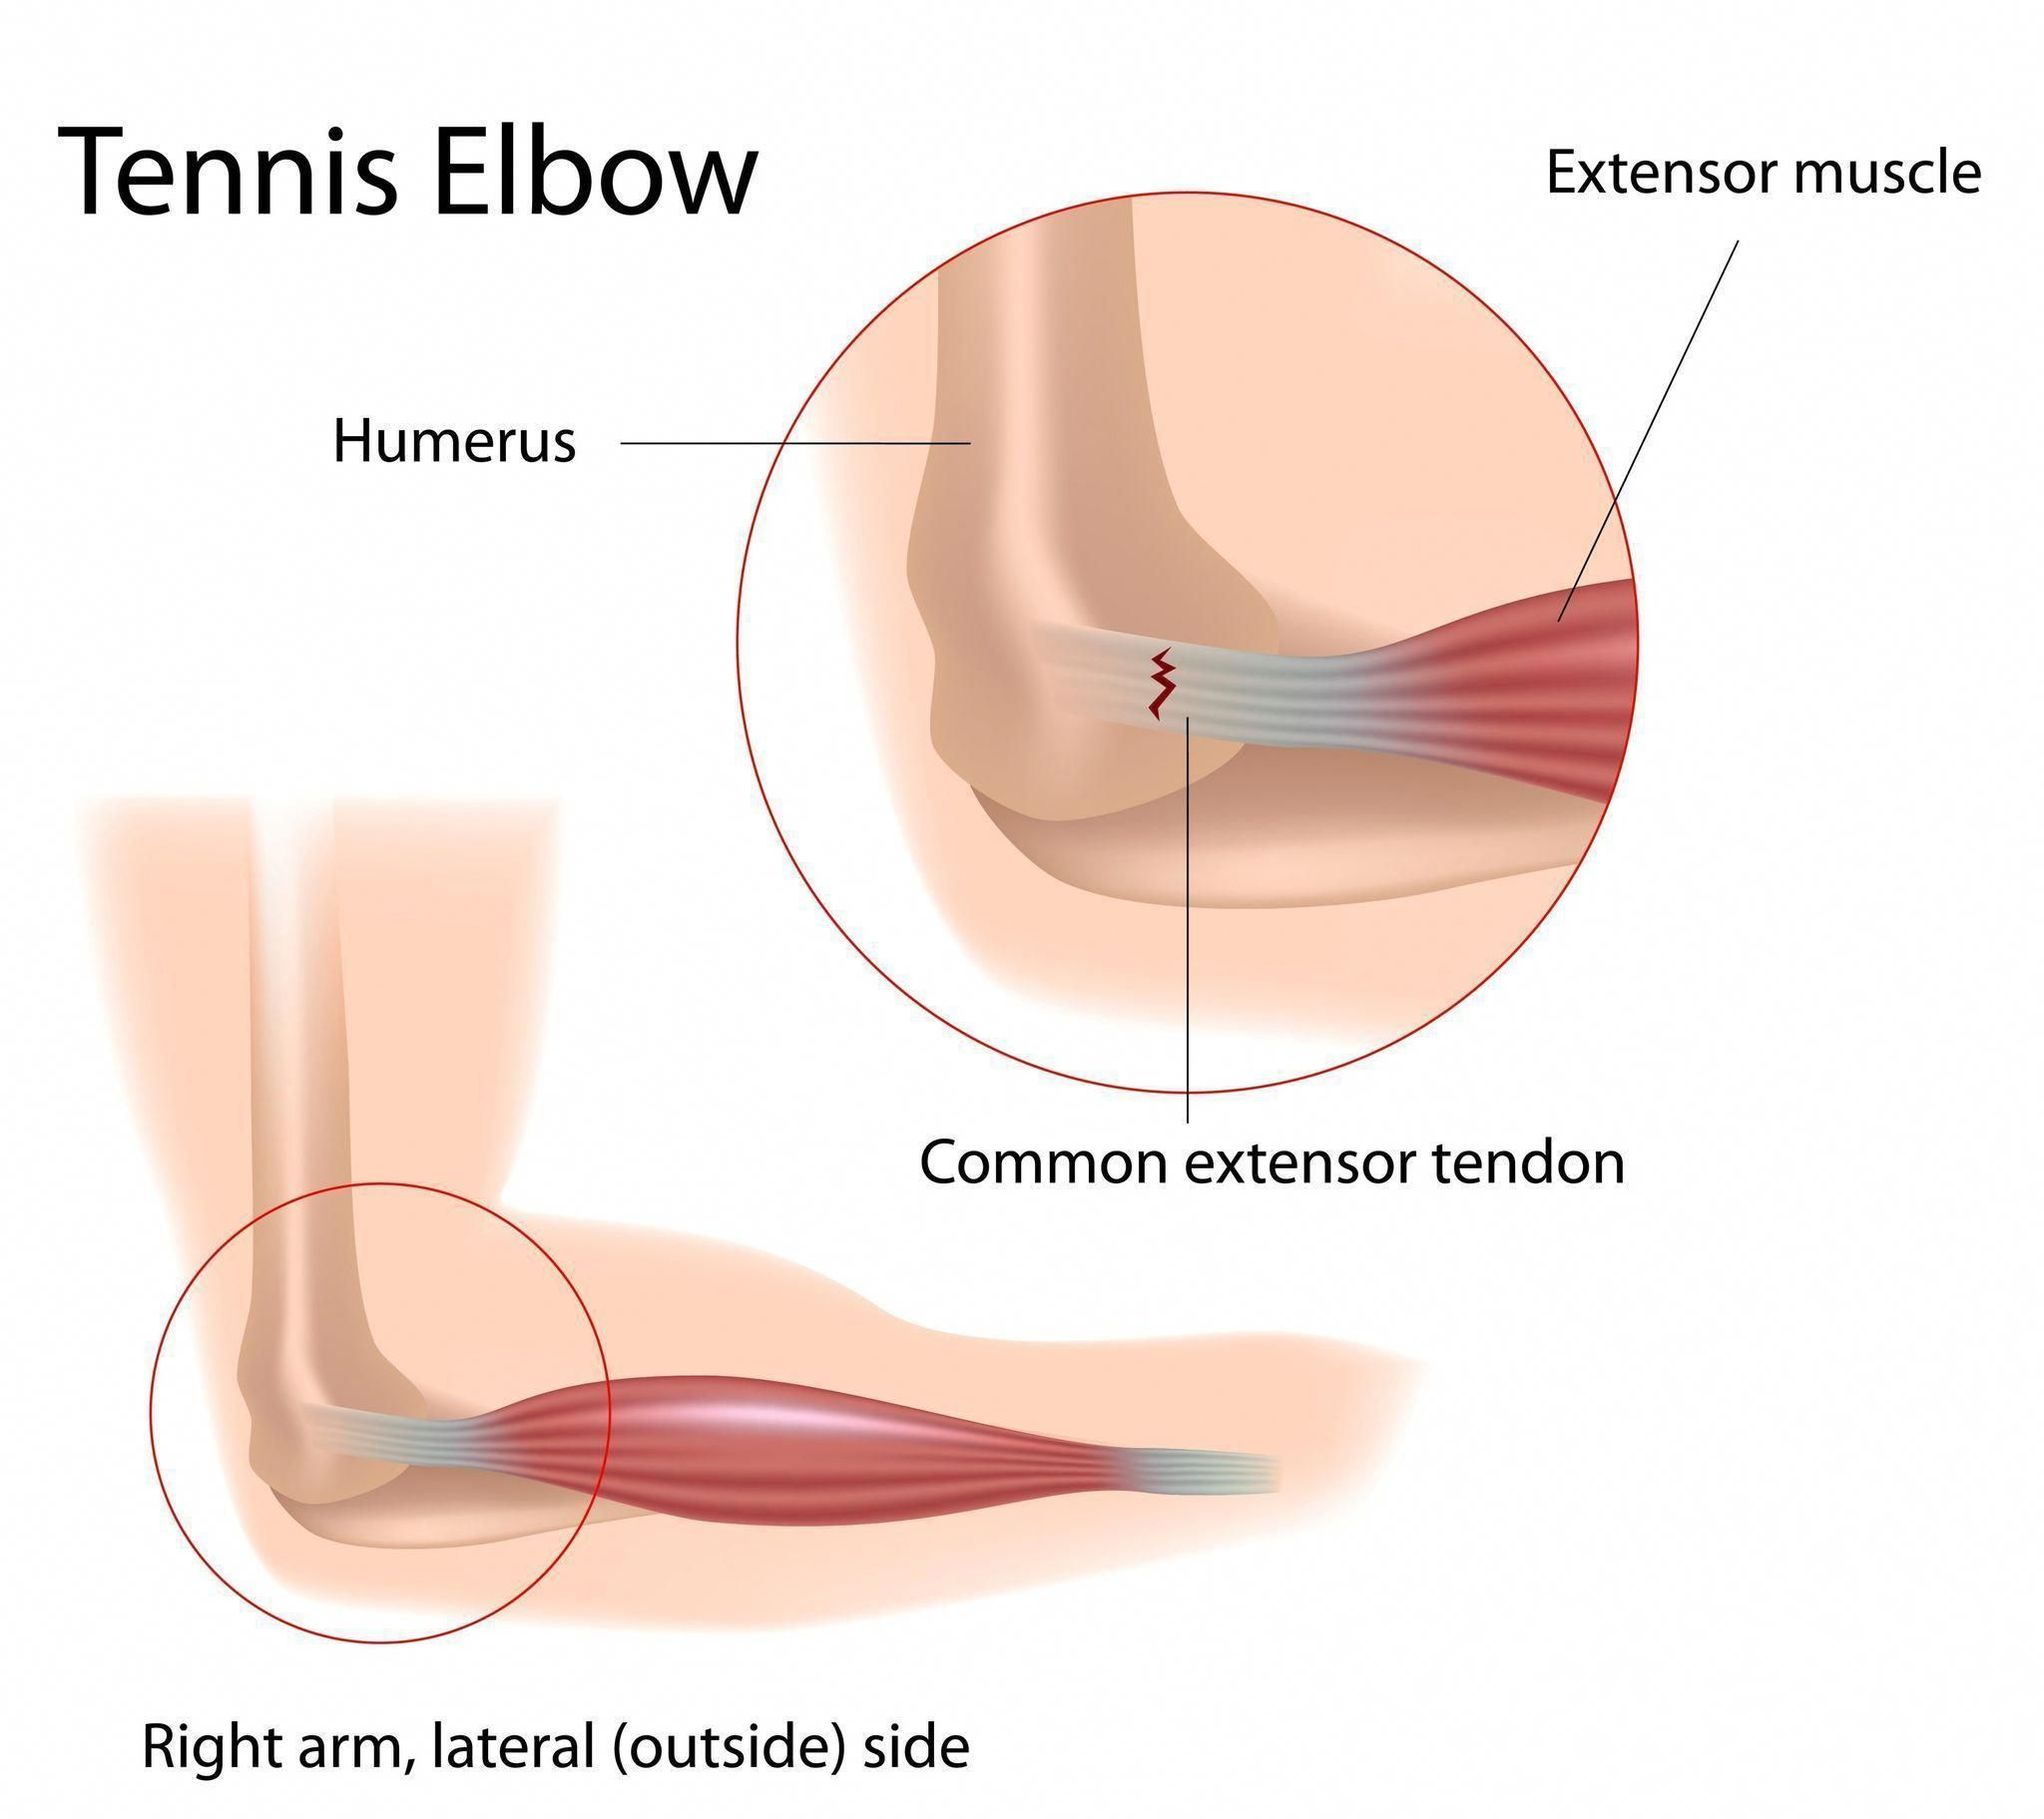 hight resolution of  tennis elbow is a common term for a condition caused by overuse of arm forearm and hand muscles that results in elbow pain you don t have to play tennis